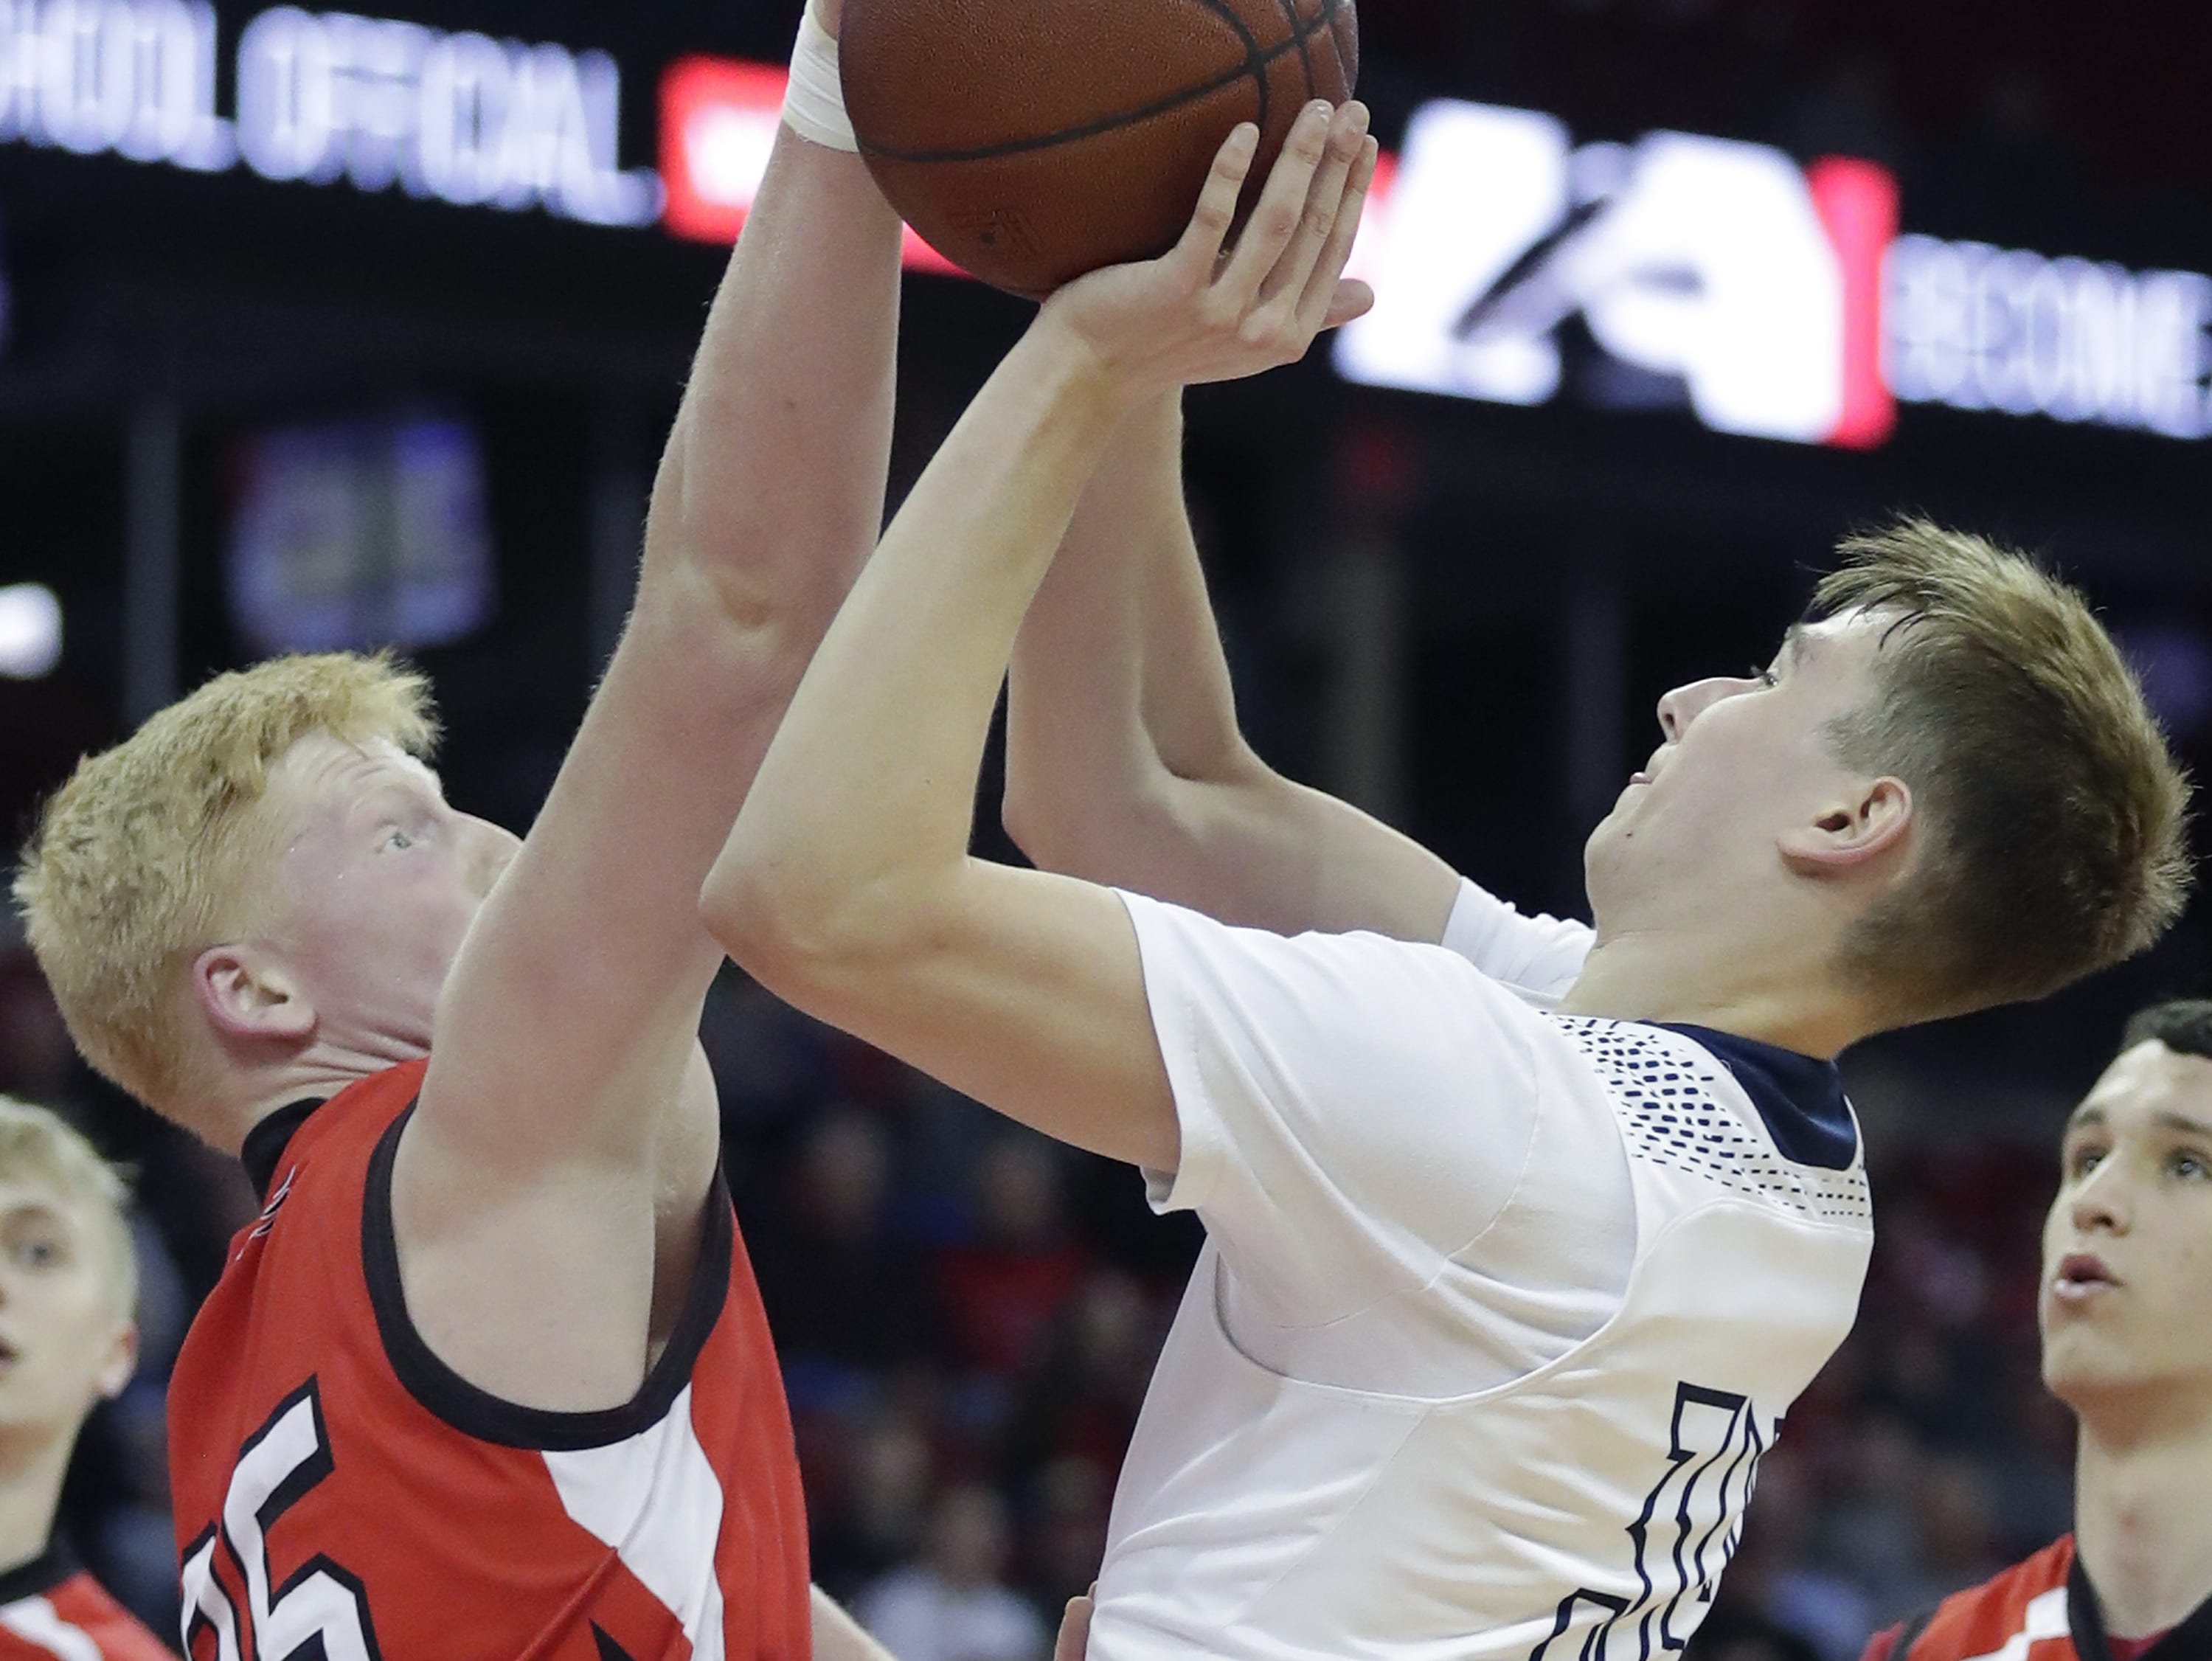 Columbus Catholic High School's #34 Ethan Meece against Bangor High School's #35 Grant Manke during their WIAA Division 5 boys basketball state semifinal on Friday, March 15, 2019, at the Kohl Center in Madison, Wis. Clumbus defeated Bangor 69 to 66. Wm. Glasheen/USA TODAY NETWORK-Wisconsin.